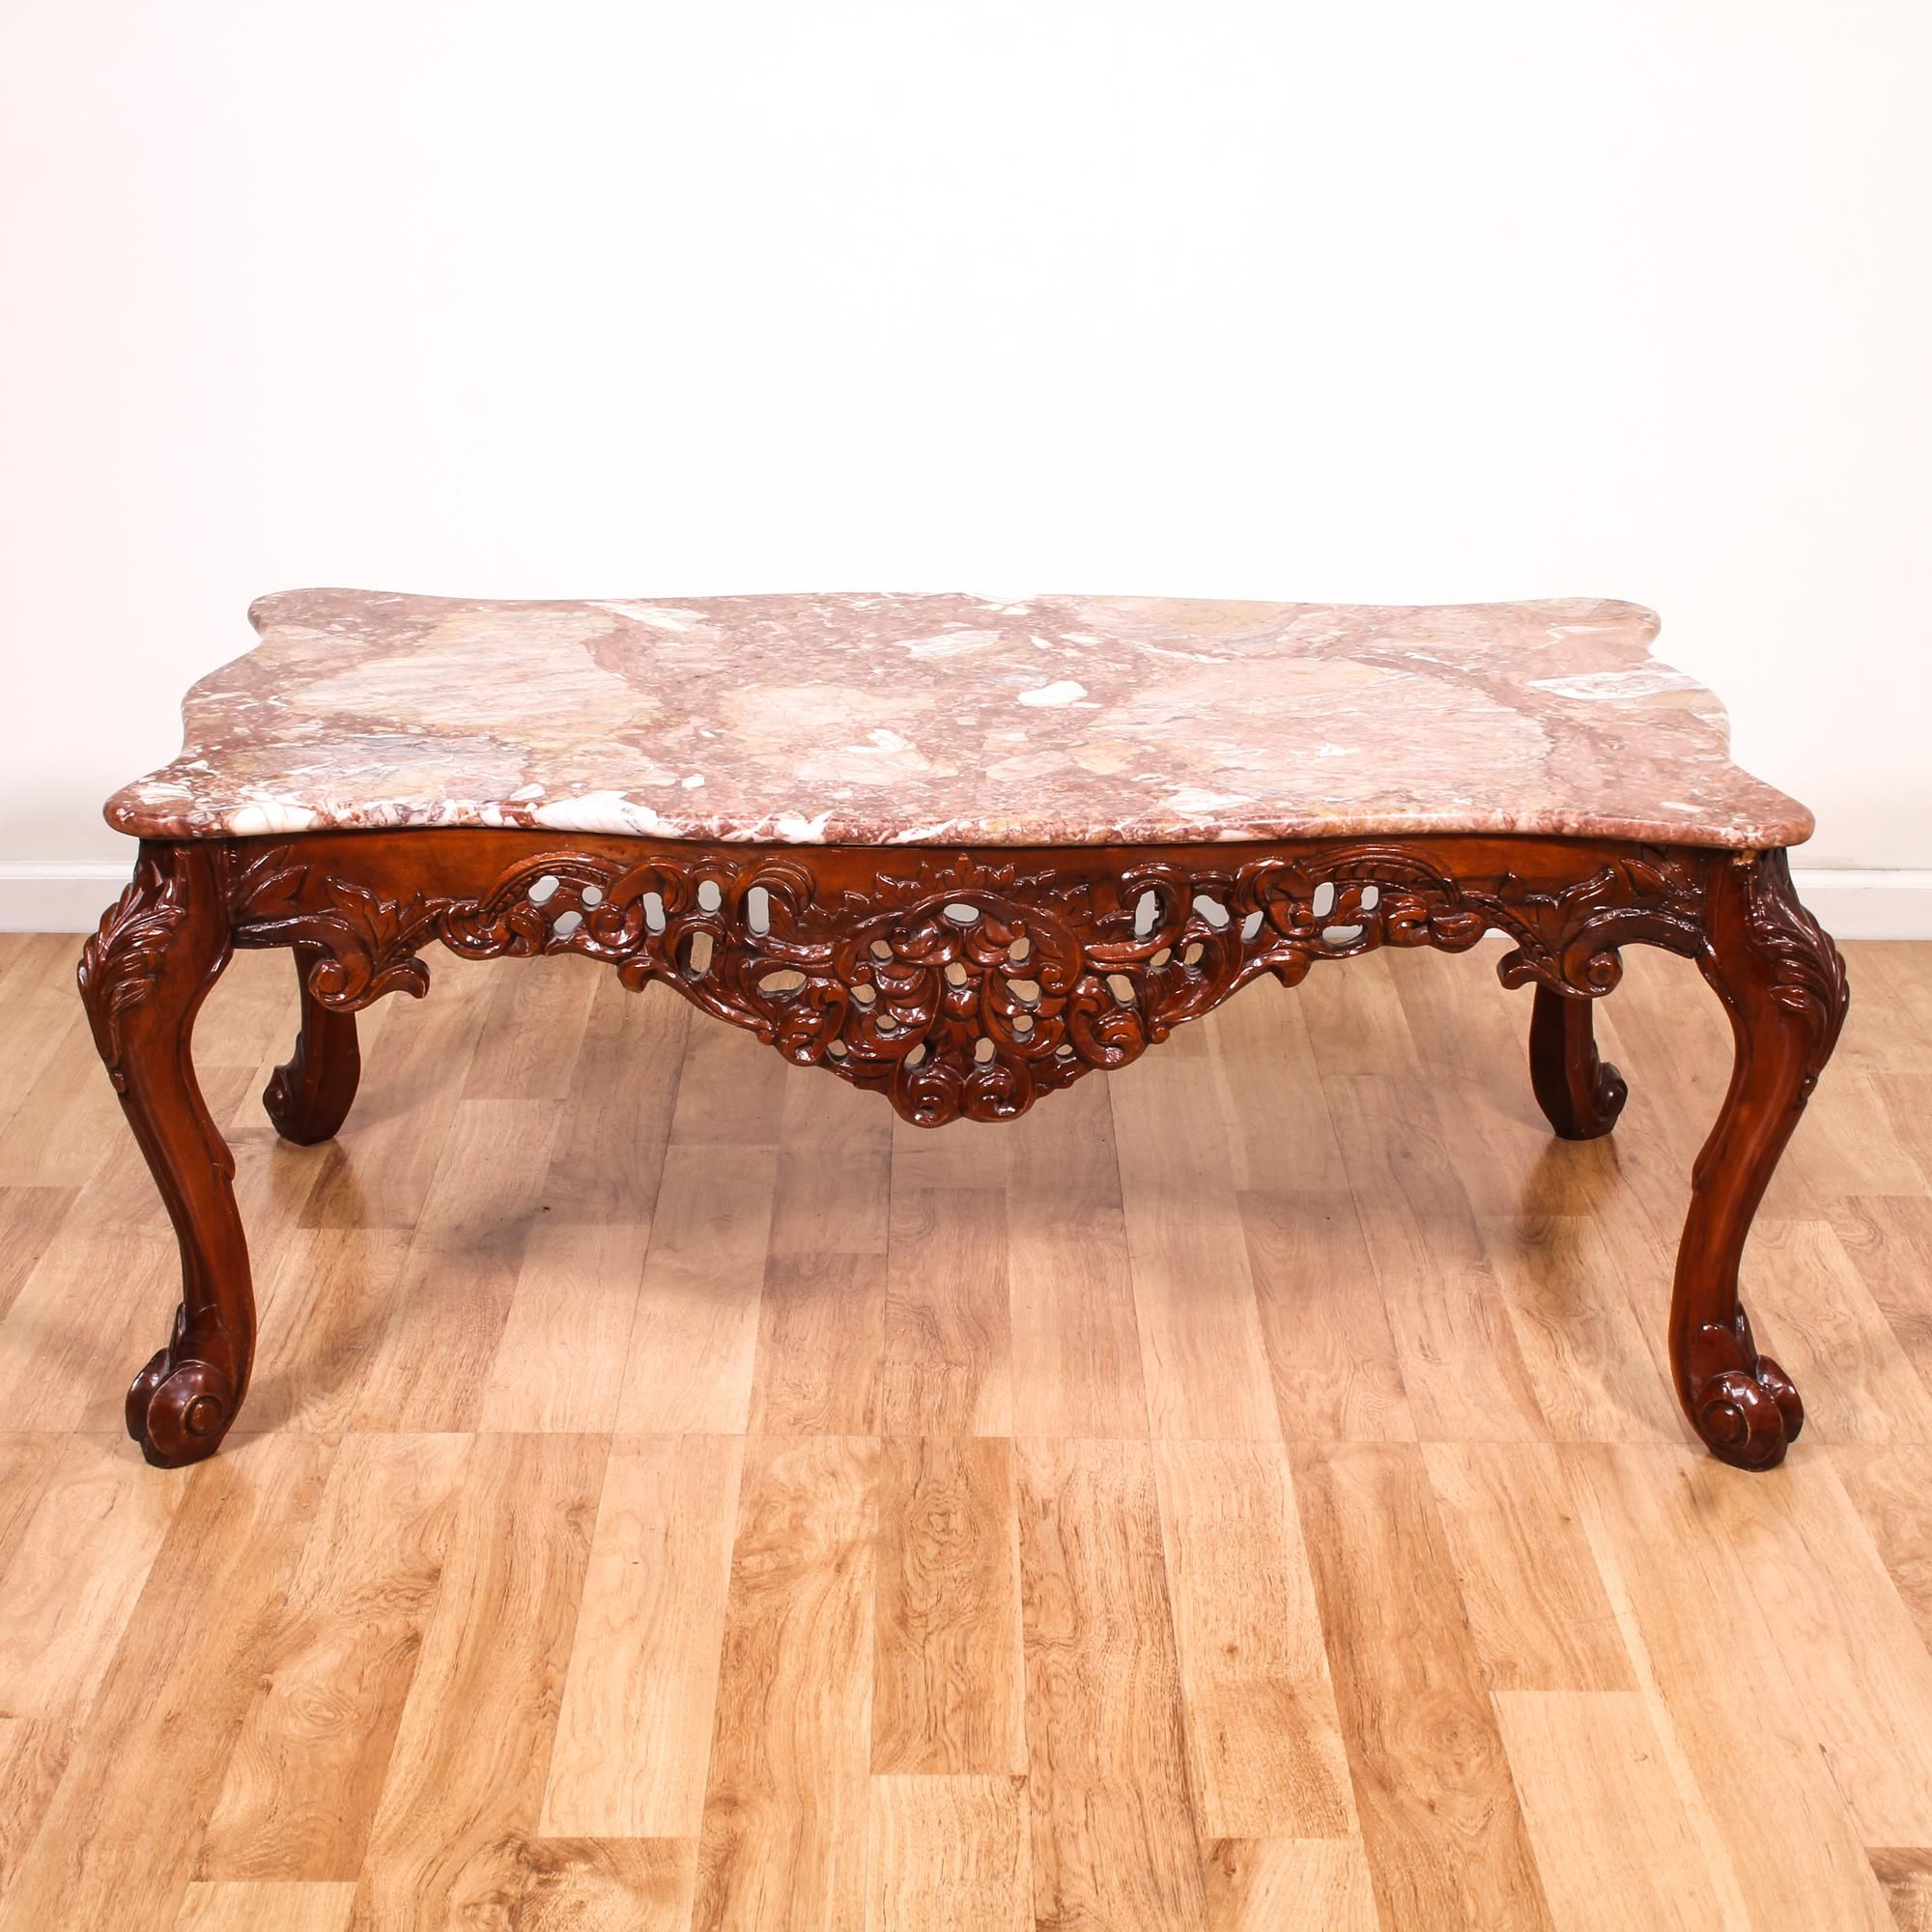 This coffee table is featured in a solid wood with a glossy cherry